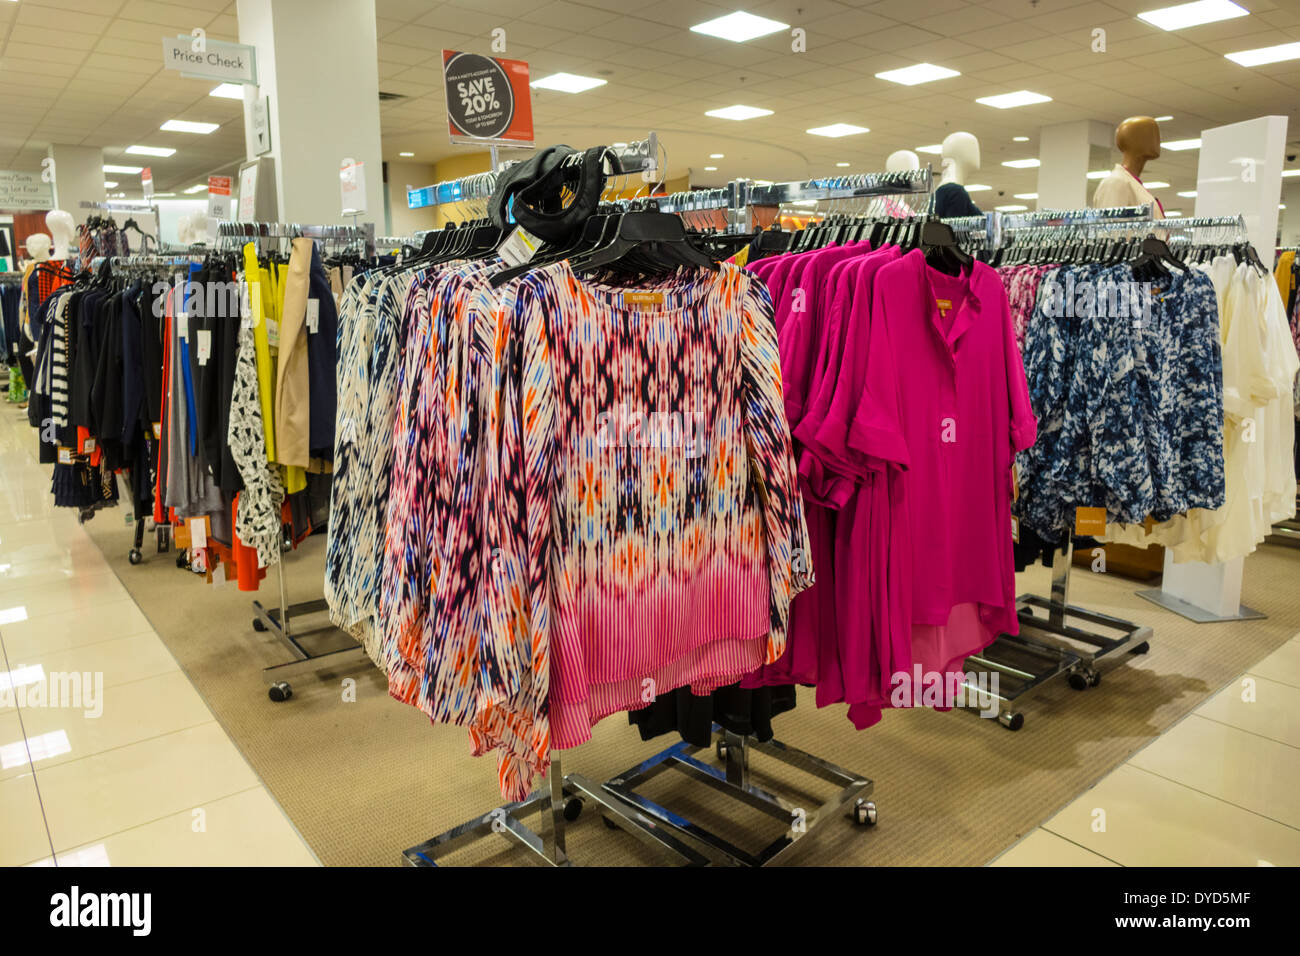 Department store clothes rack